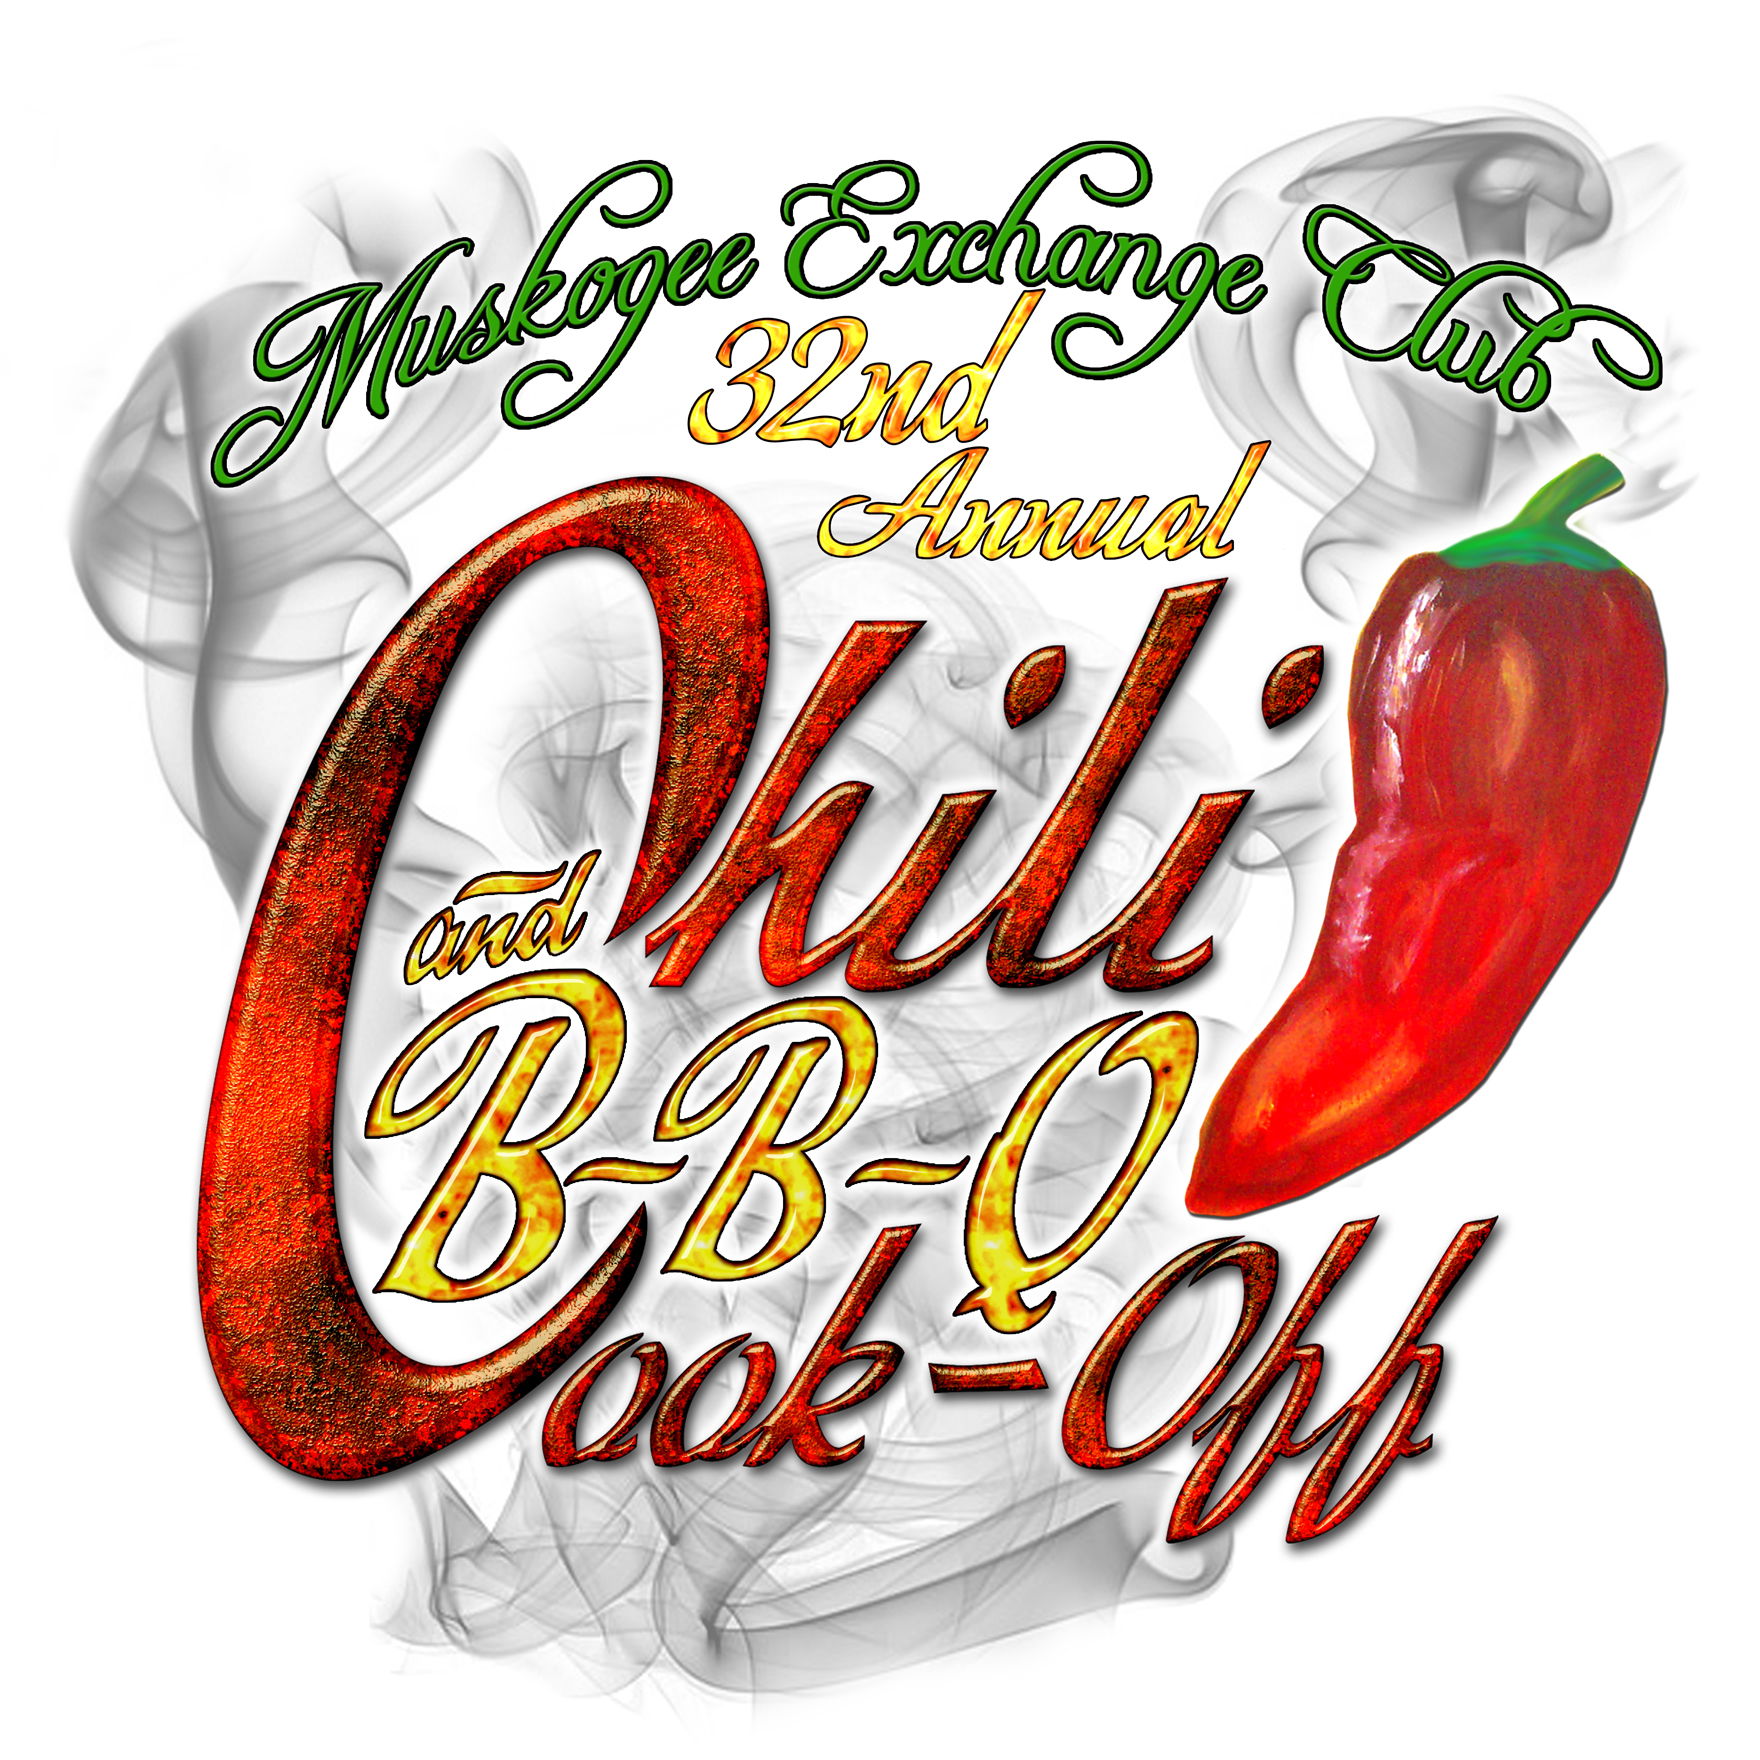 26th Annual Muskogee Exchange Club Chili and Barbeque Cook-Off